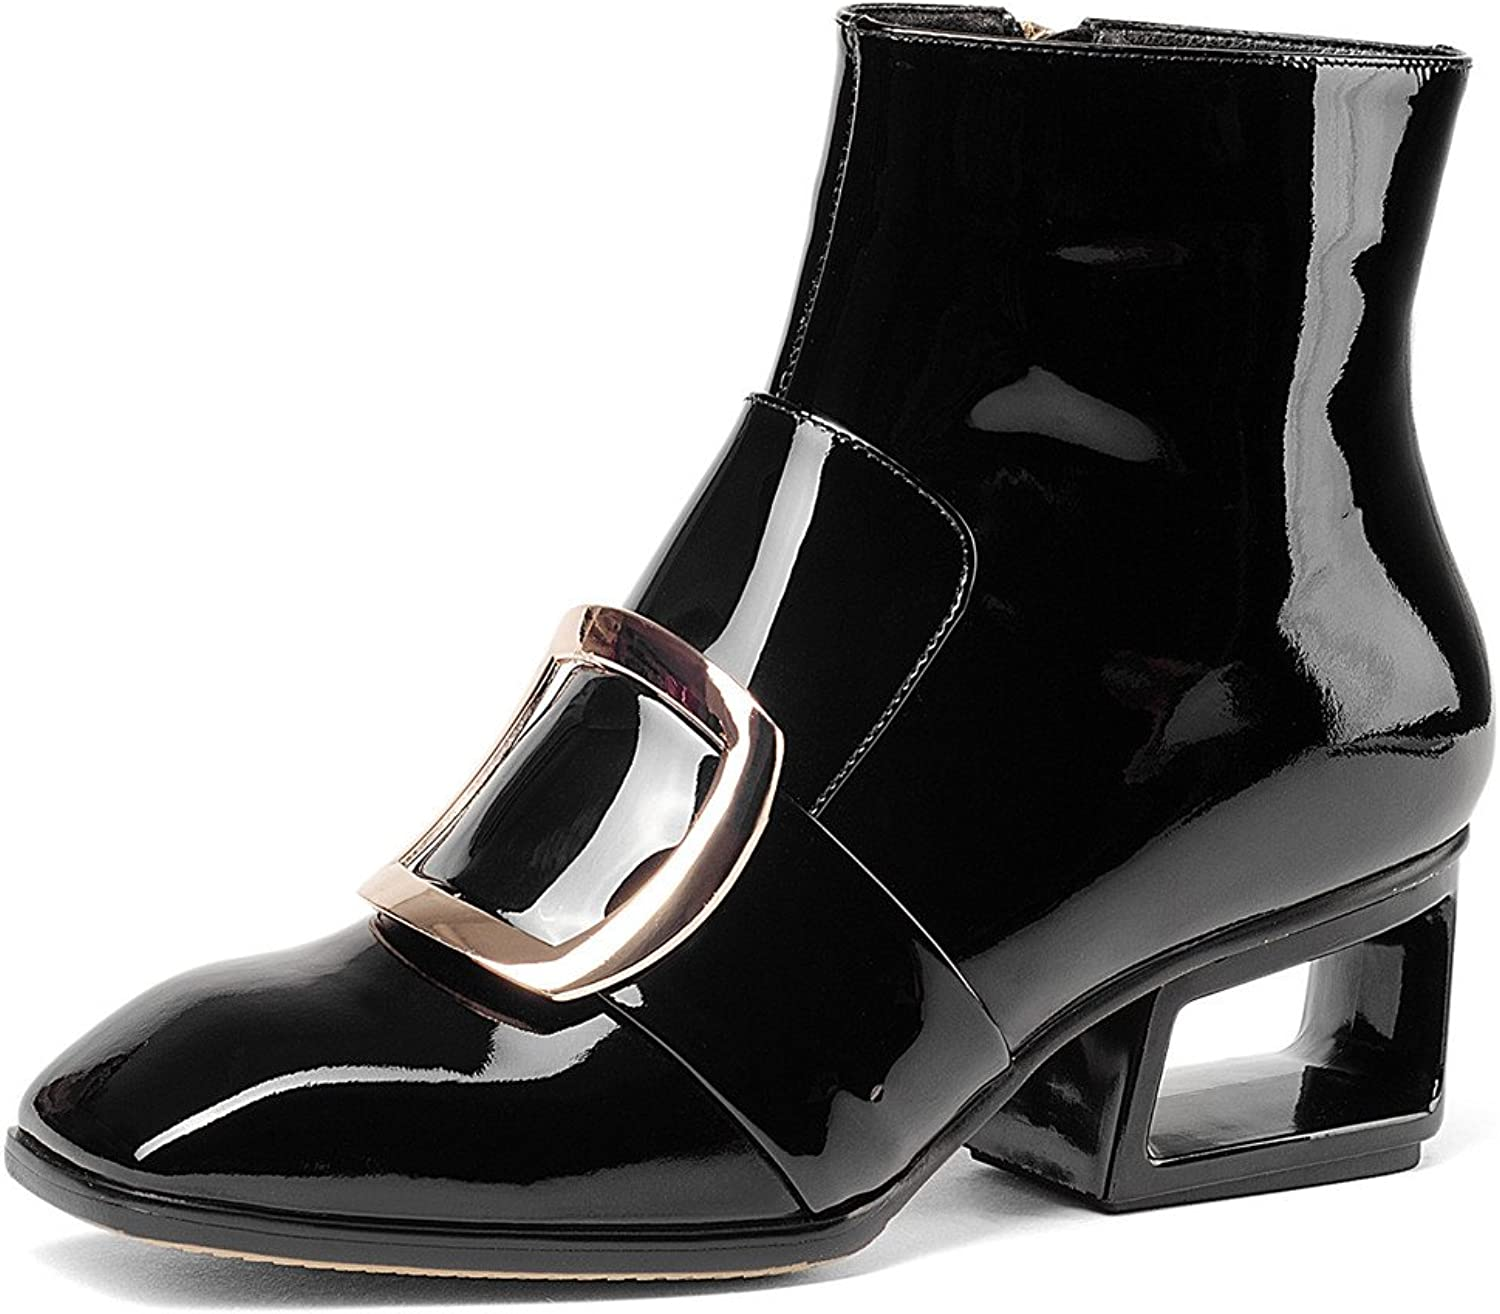 Nine Seven Patent Leather Women's Square Toe Exquisite Heel Handmade Elegant Sexy Ankle Boots